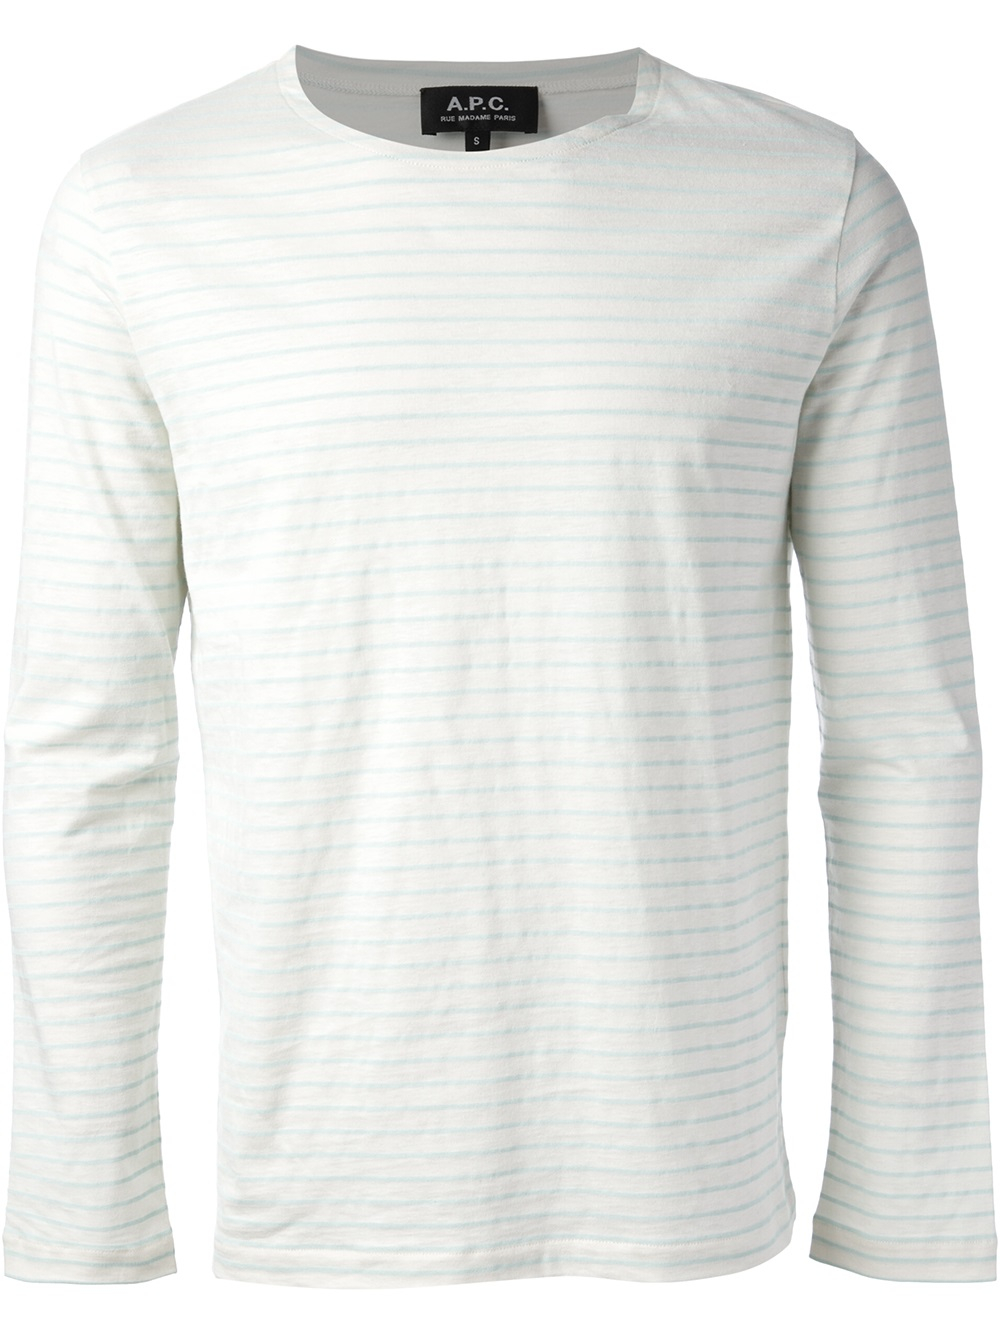 Lyst a p c 39 marini re 39 t shirt in natural for men for Apc white t shirt